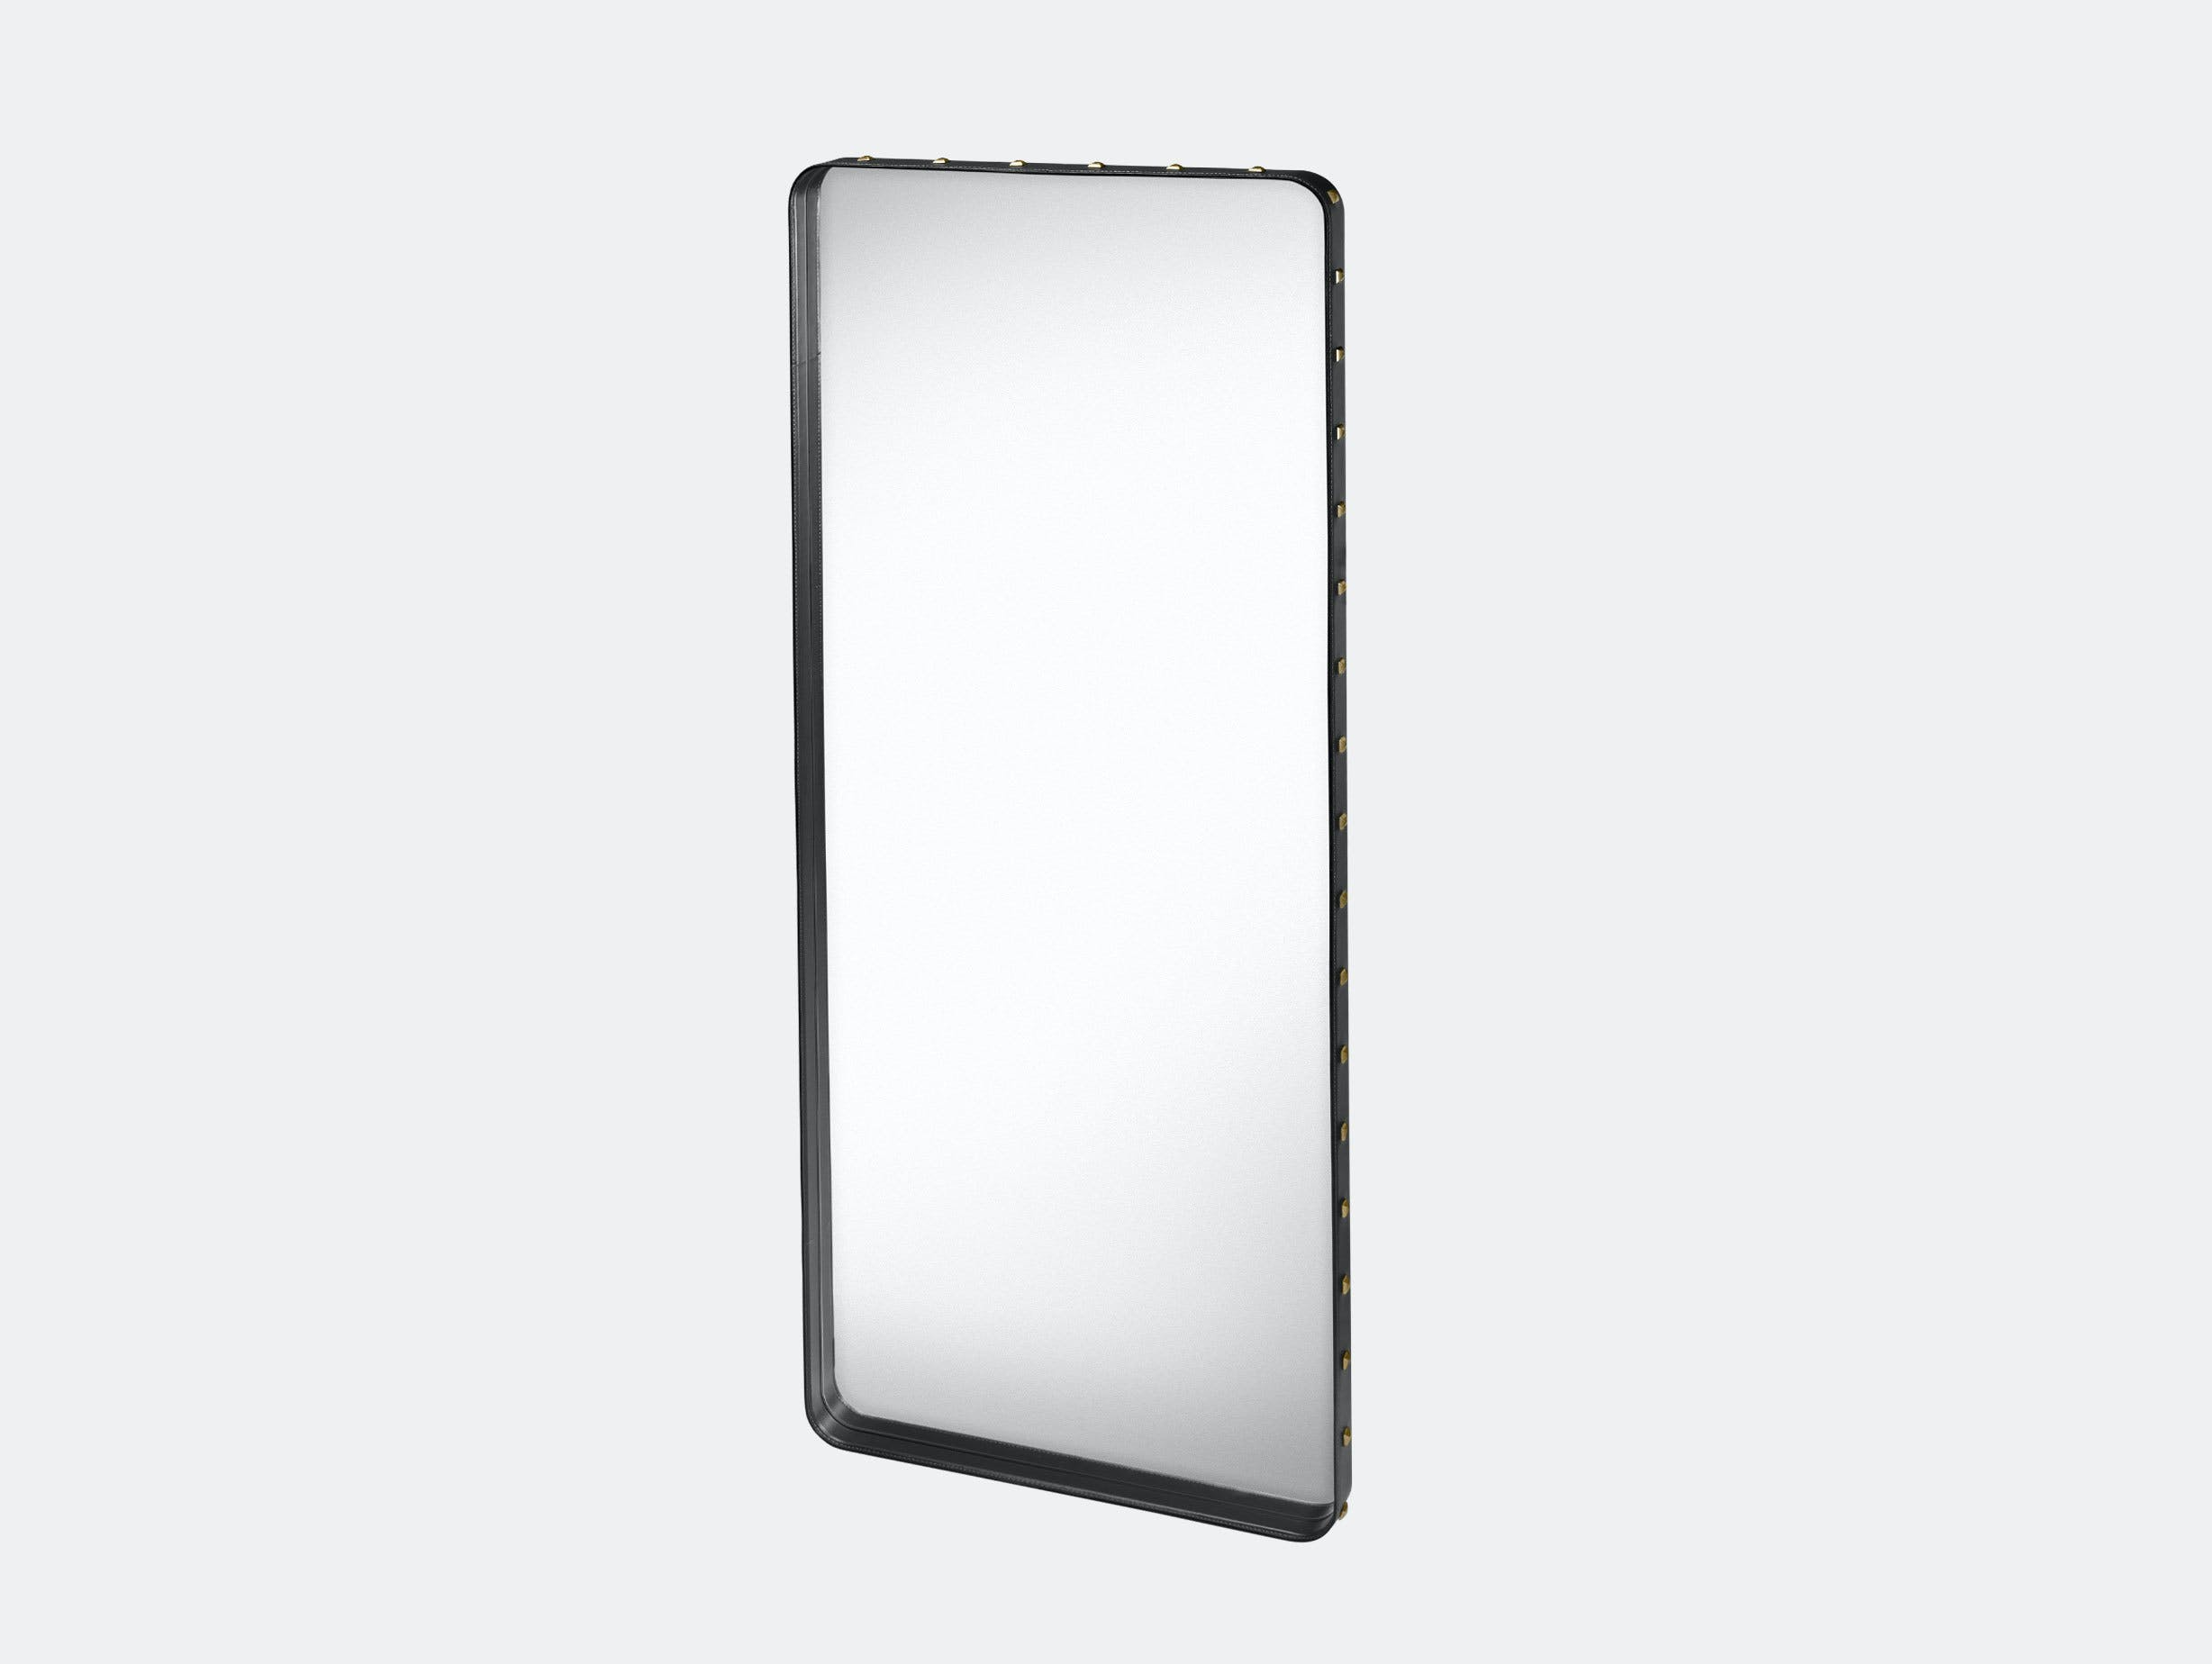 Gubi Adnet Rectangular Wall Mirror large black Jacques Adnet